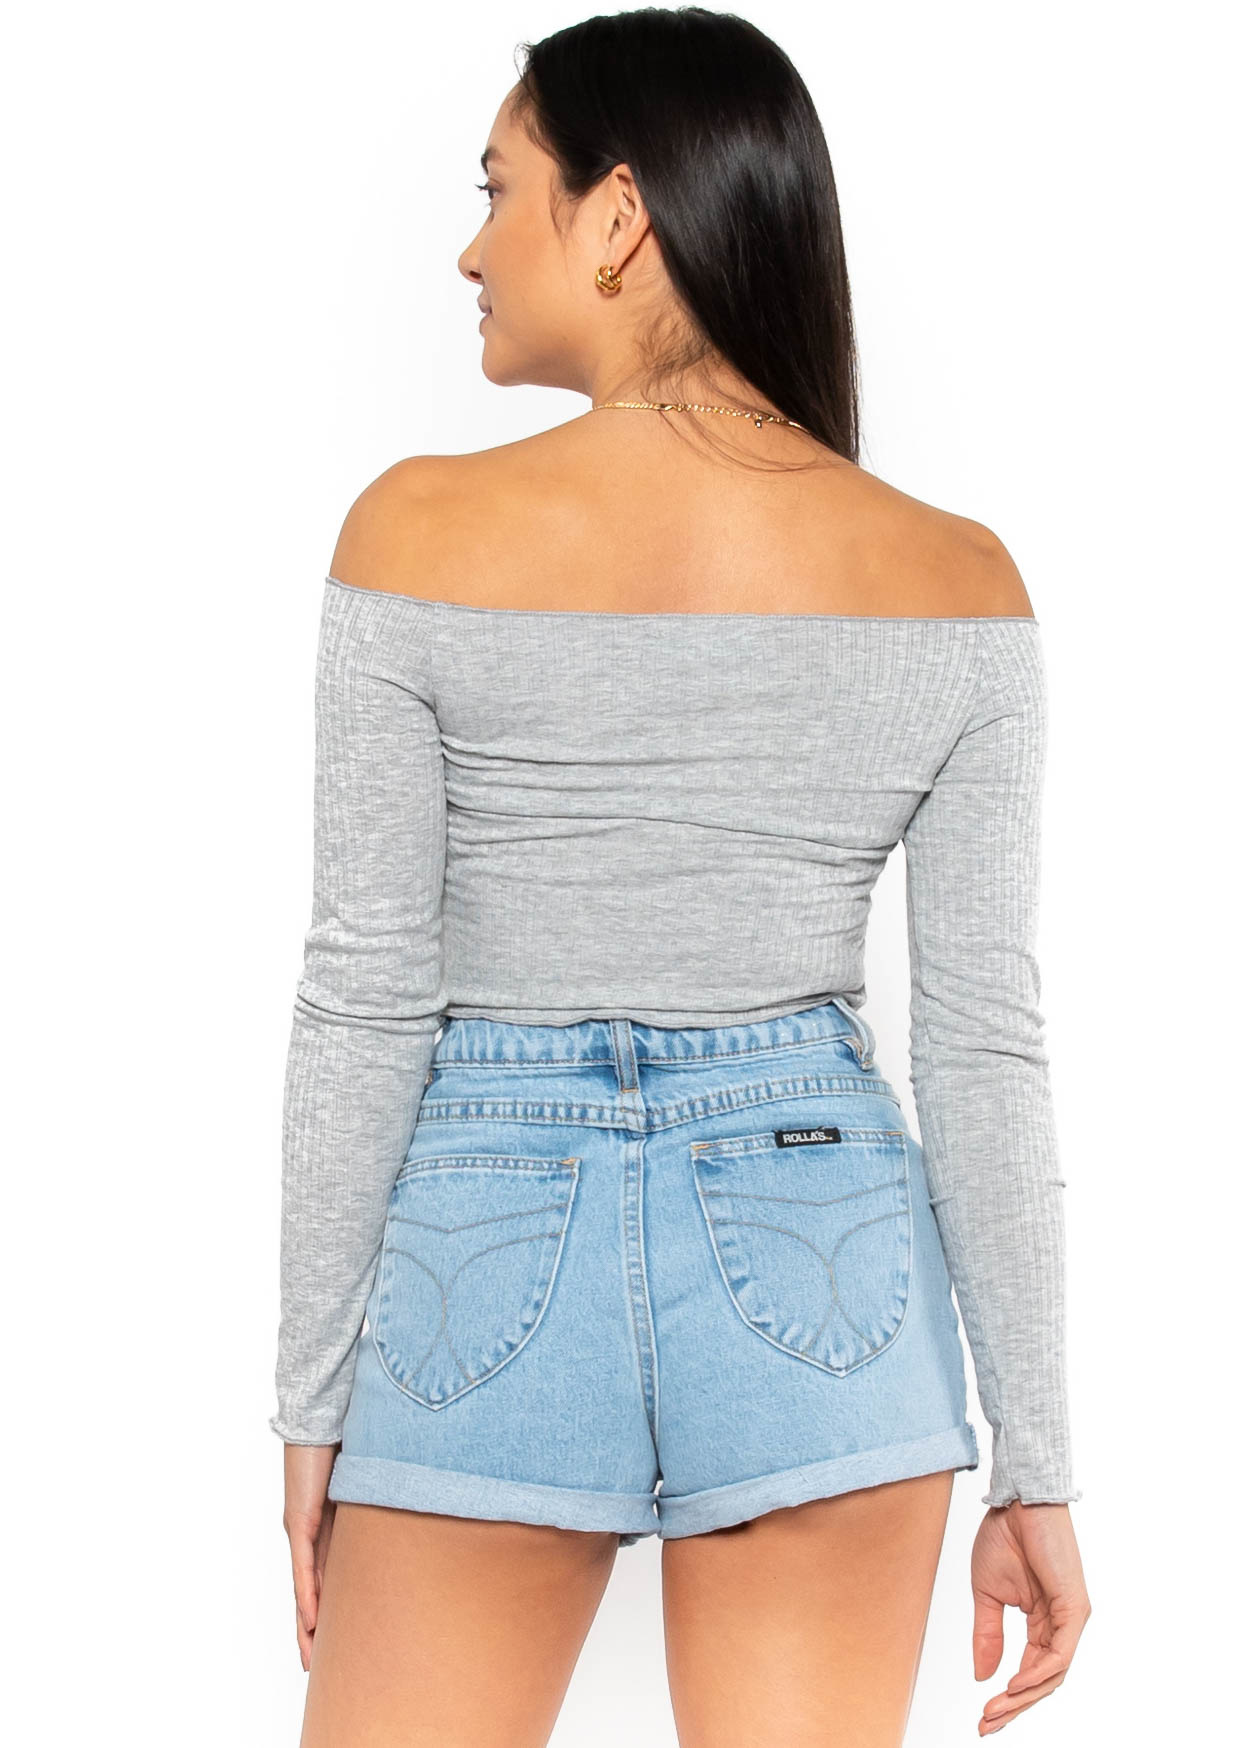 VISIONS OF STYLE GREY CROP TOP